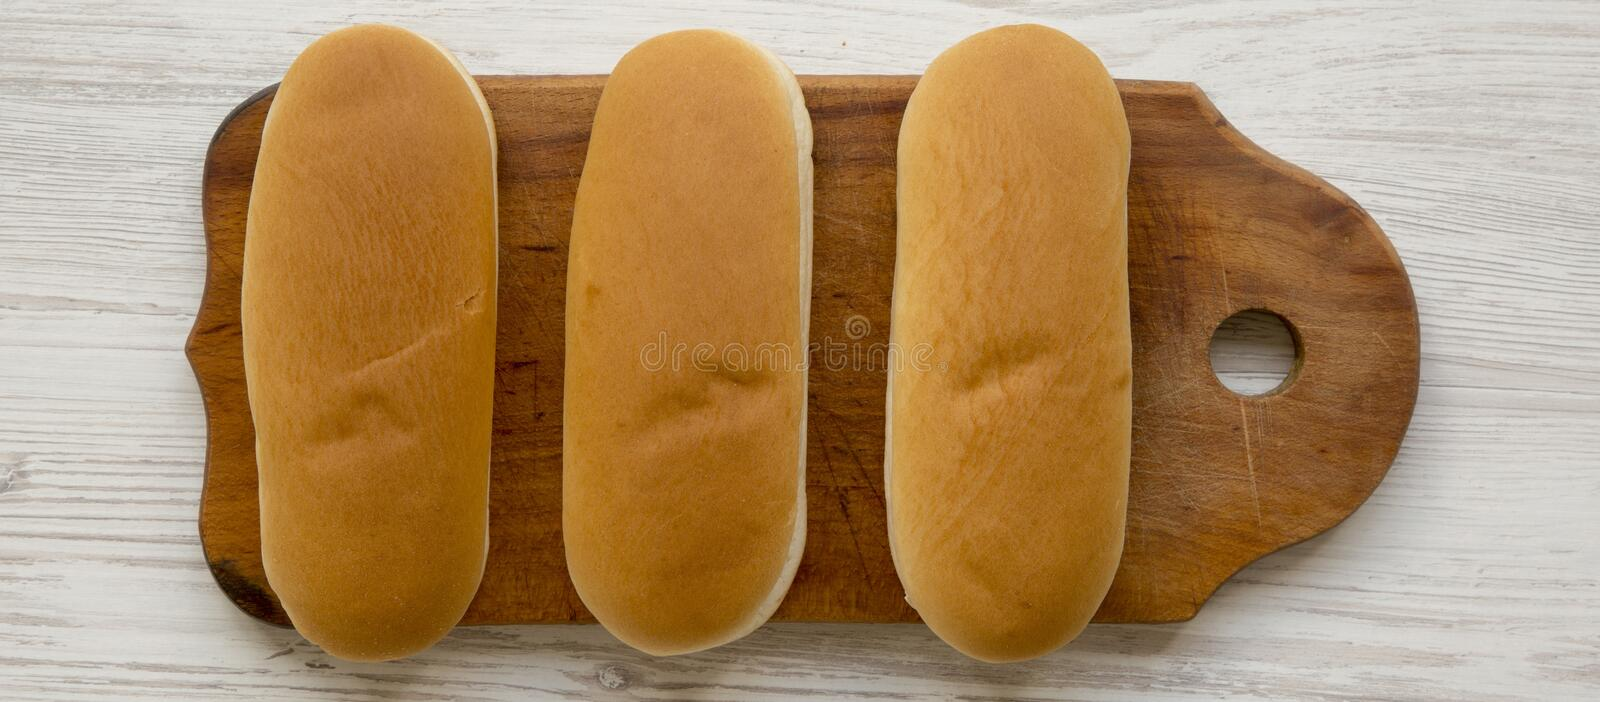 167 Hot Dog Buns Top View Photos Free Royalty Free Stock Photos From Dreamstime